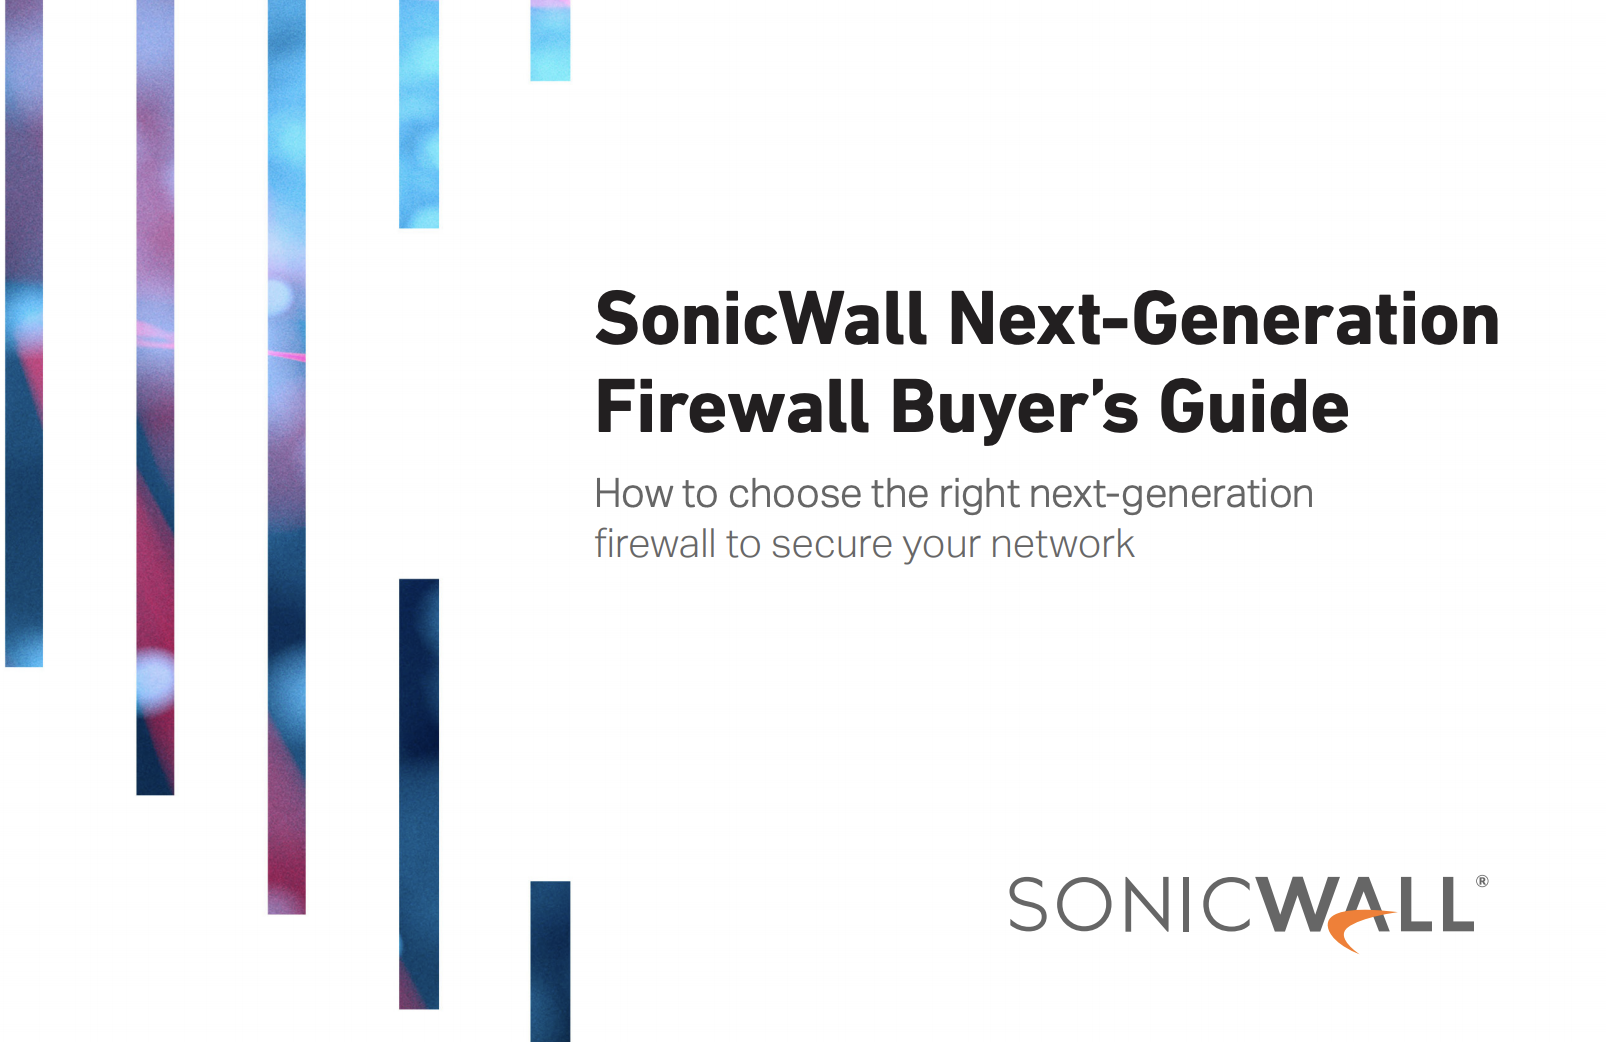 SonicWall Next-Generation Firewall Buyer's Guide